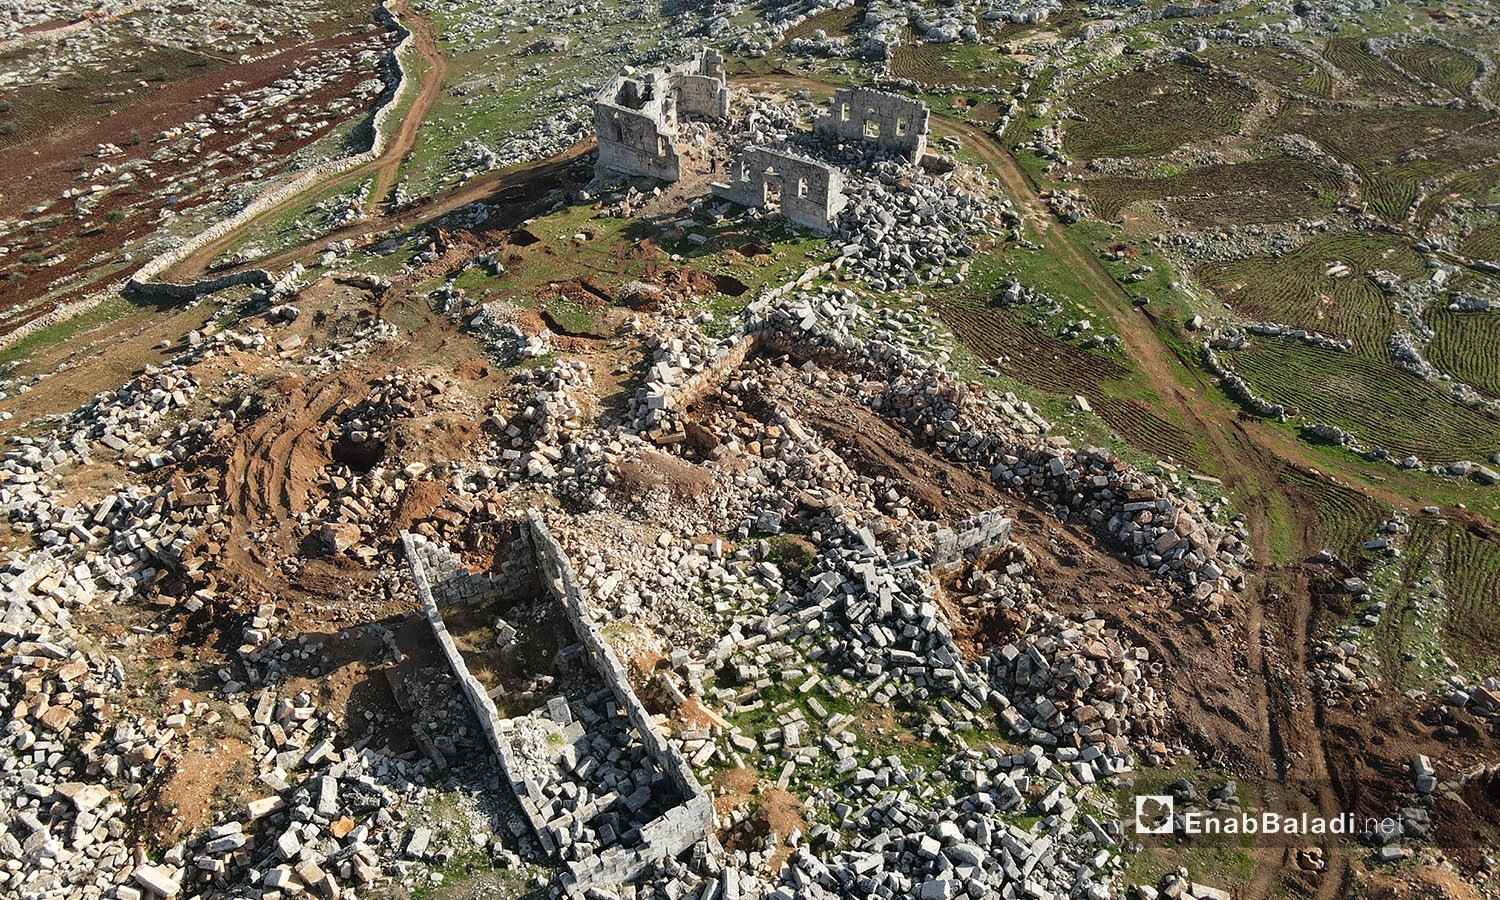 Drone photos showing severe damage at the Banqusa Archeological Site in the al-Wastani Mount, Idlib countryside – 13 January 2021 (Enab Baladi/Yousef Ghuraibi)